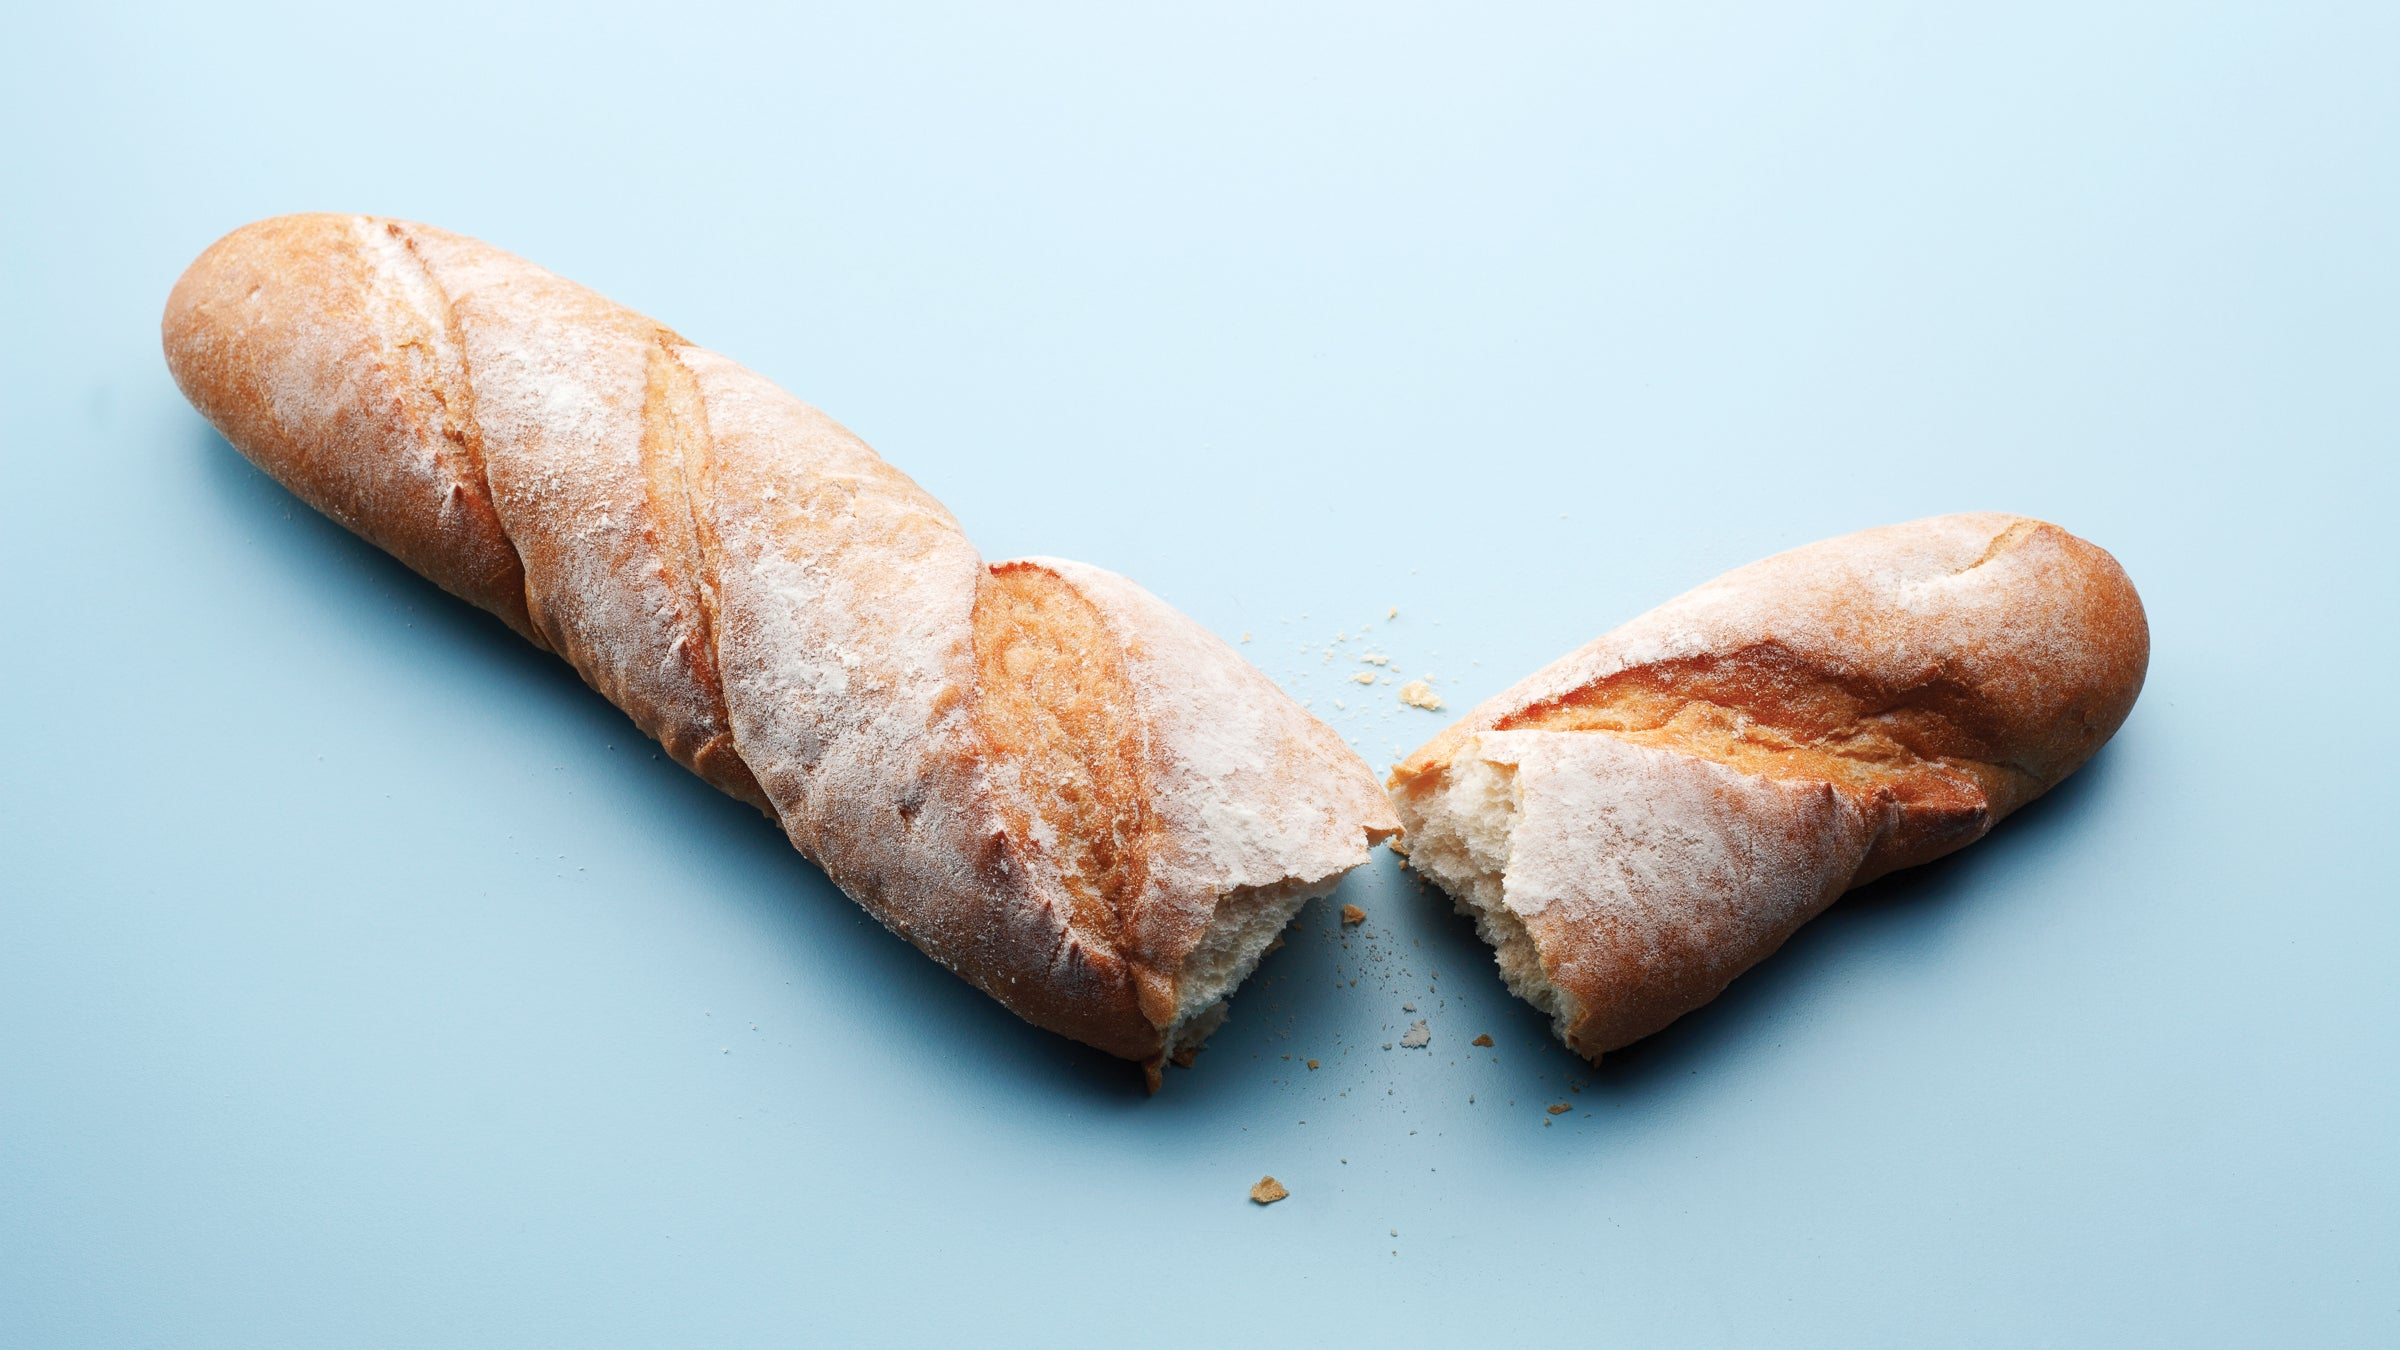 Baguette torn into two pieces